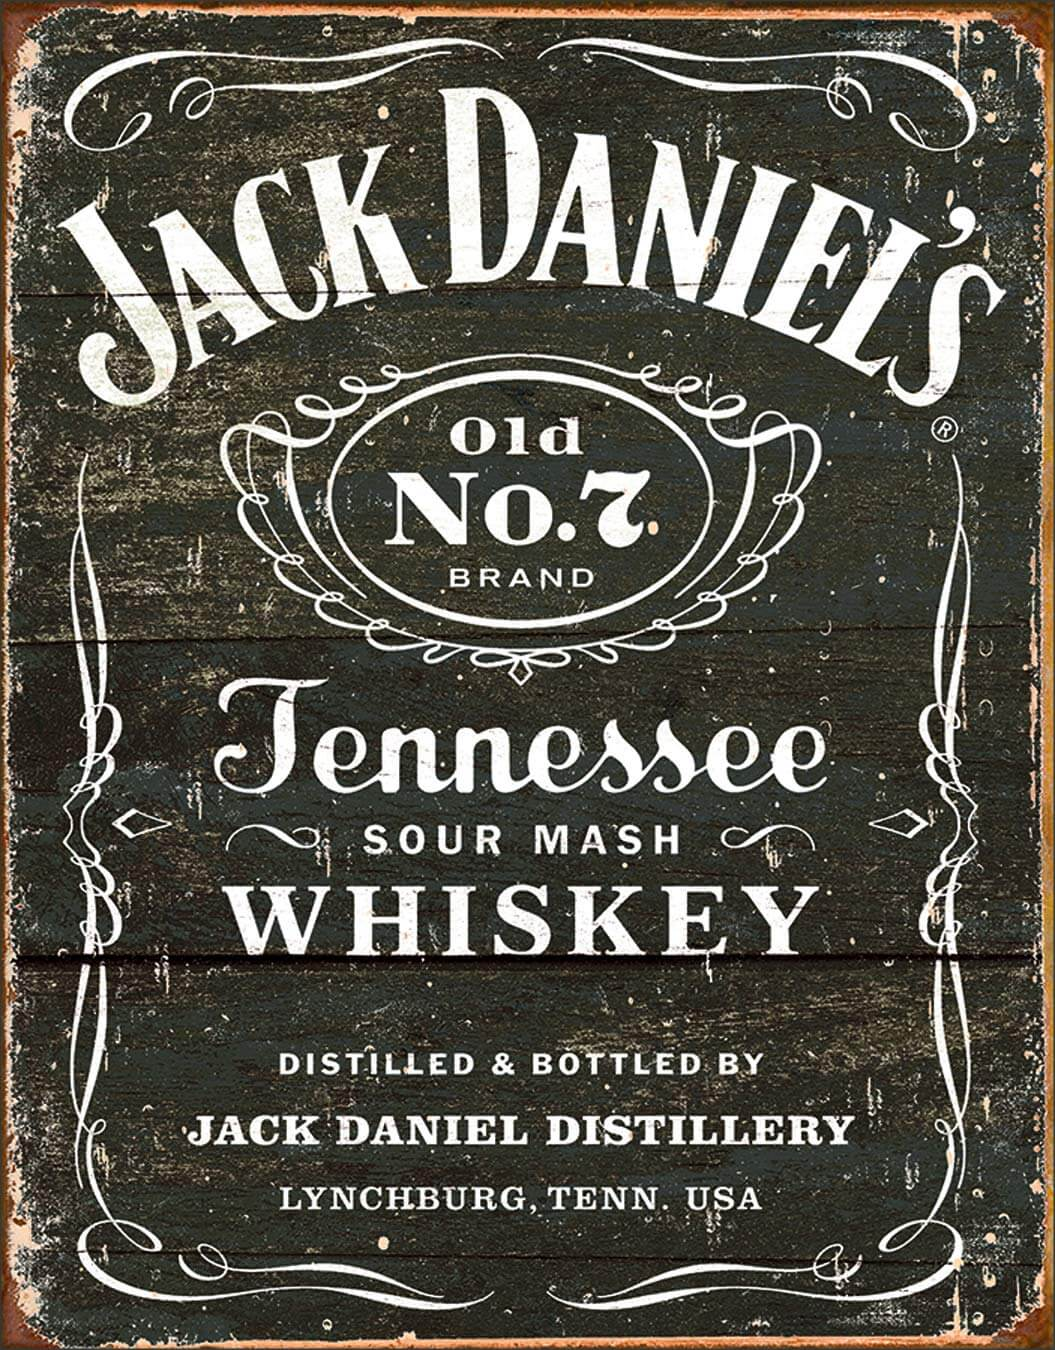 Old-School Jack Daniel's Tennessee Whiskey Sign